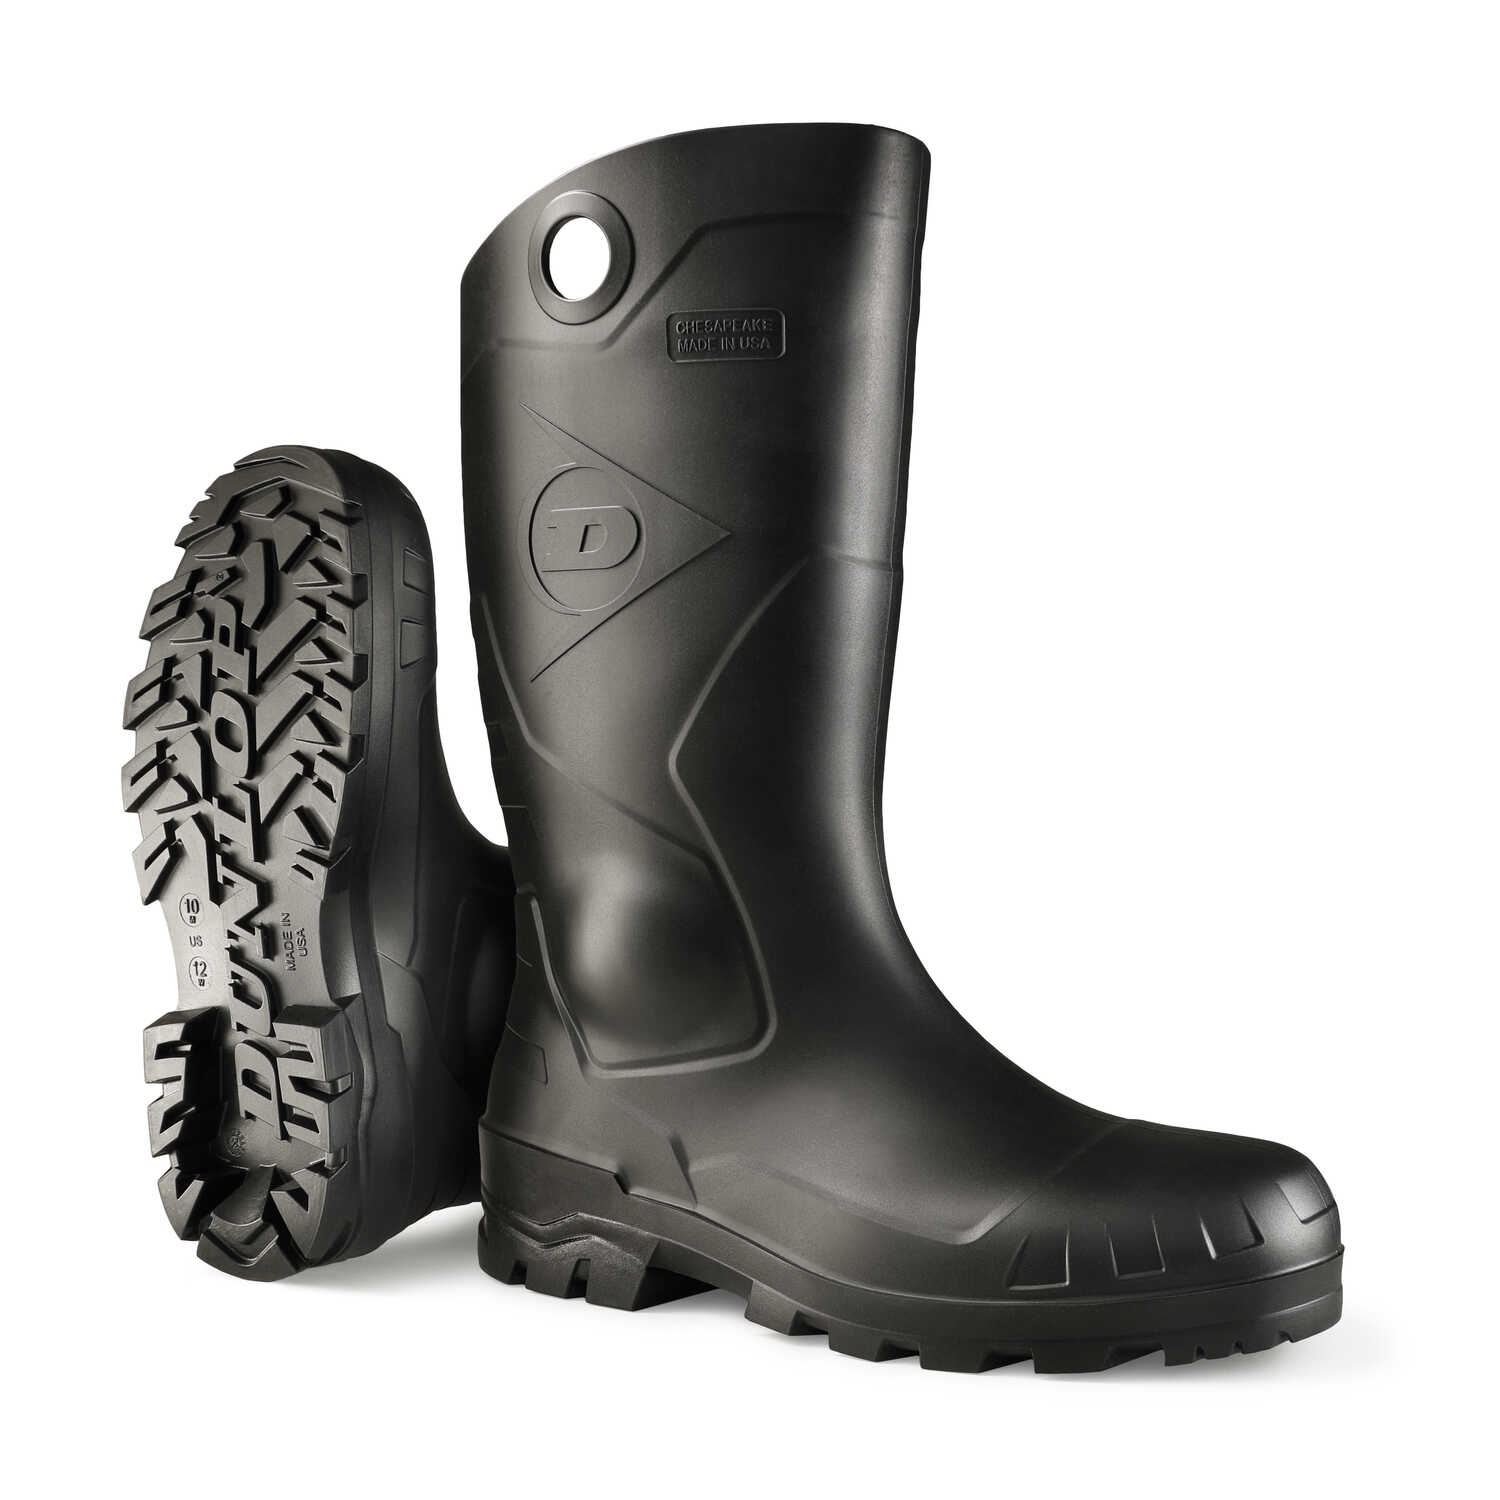 Dunlop  Waterproof Boots  Size 3  Black  Male